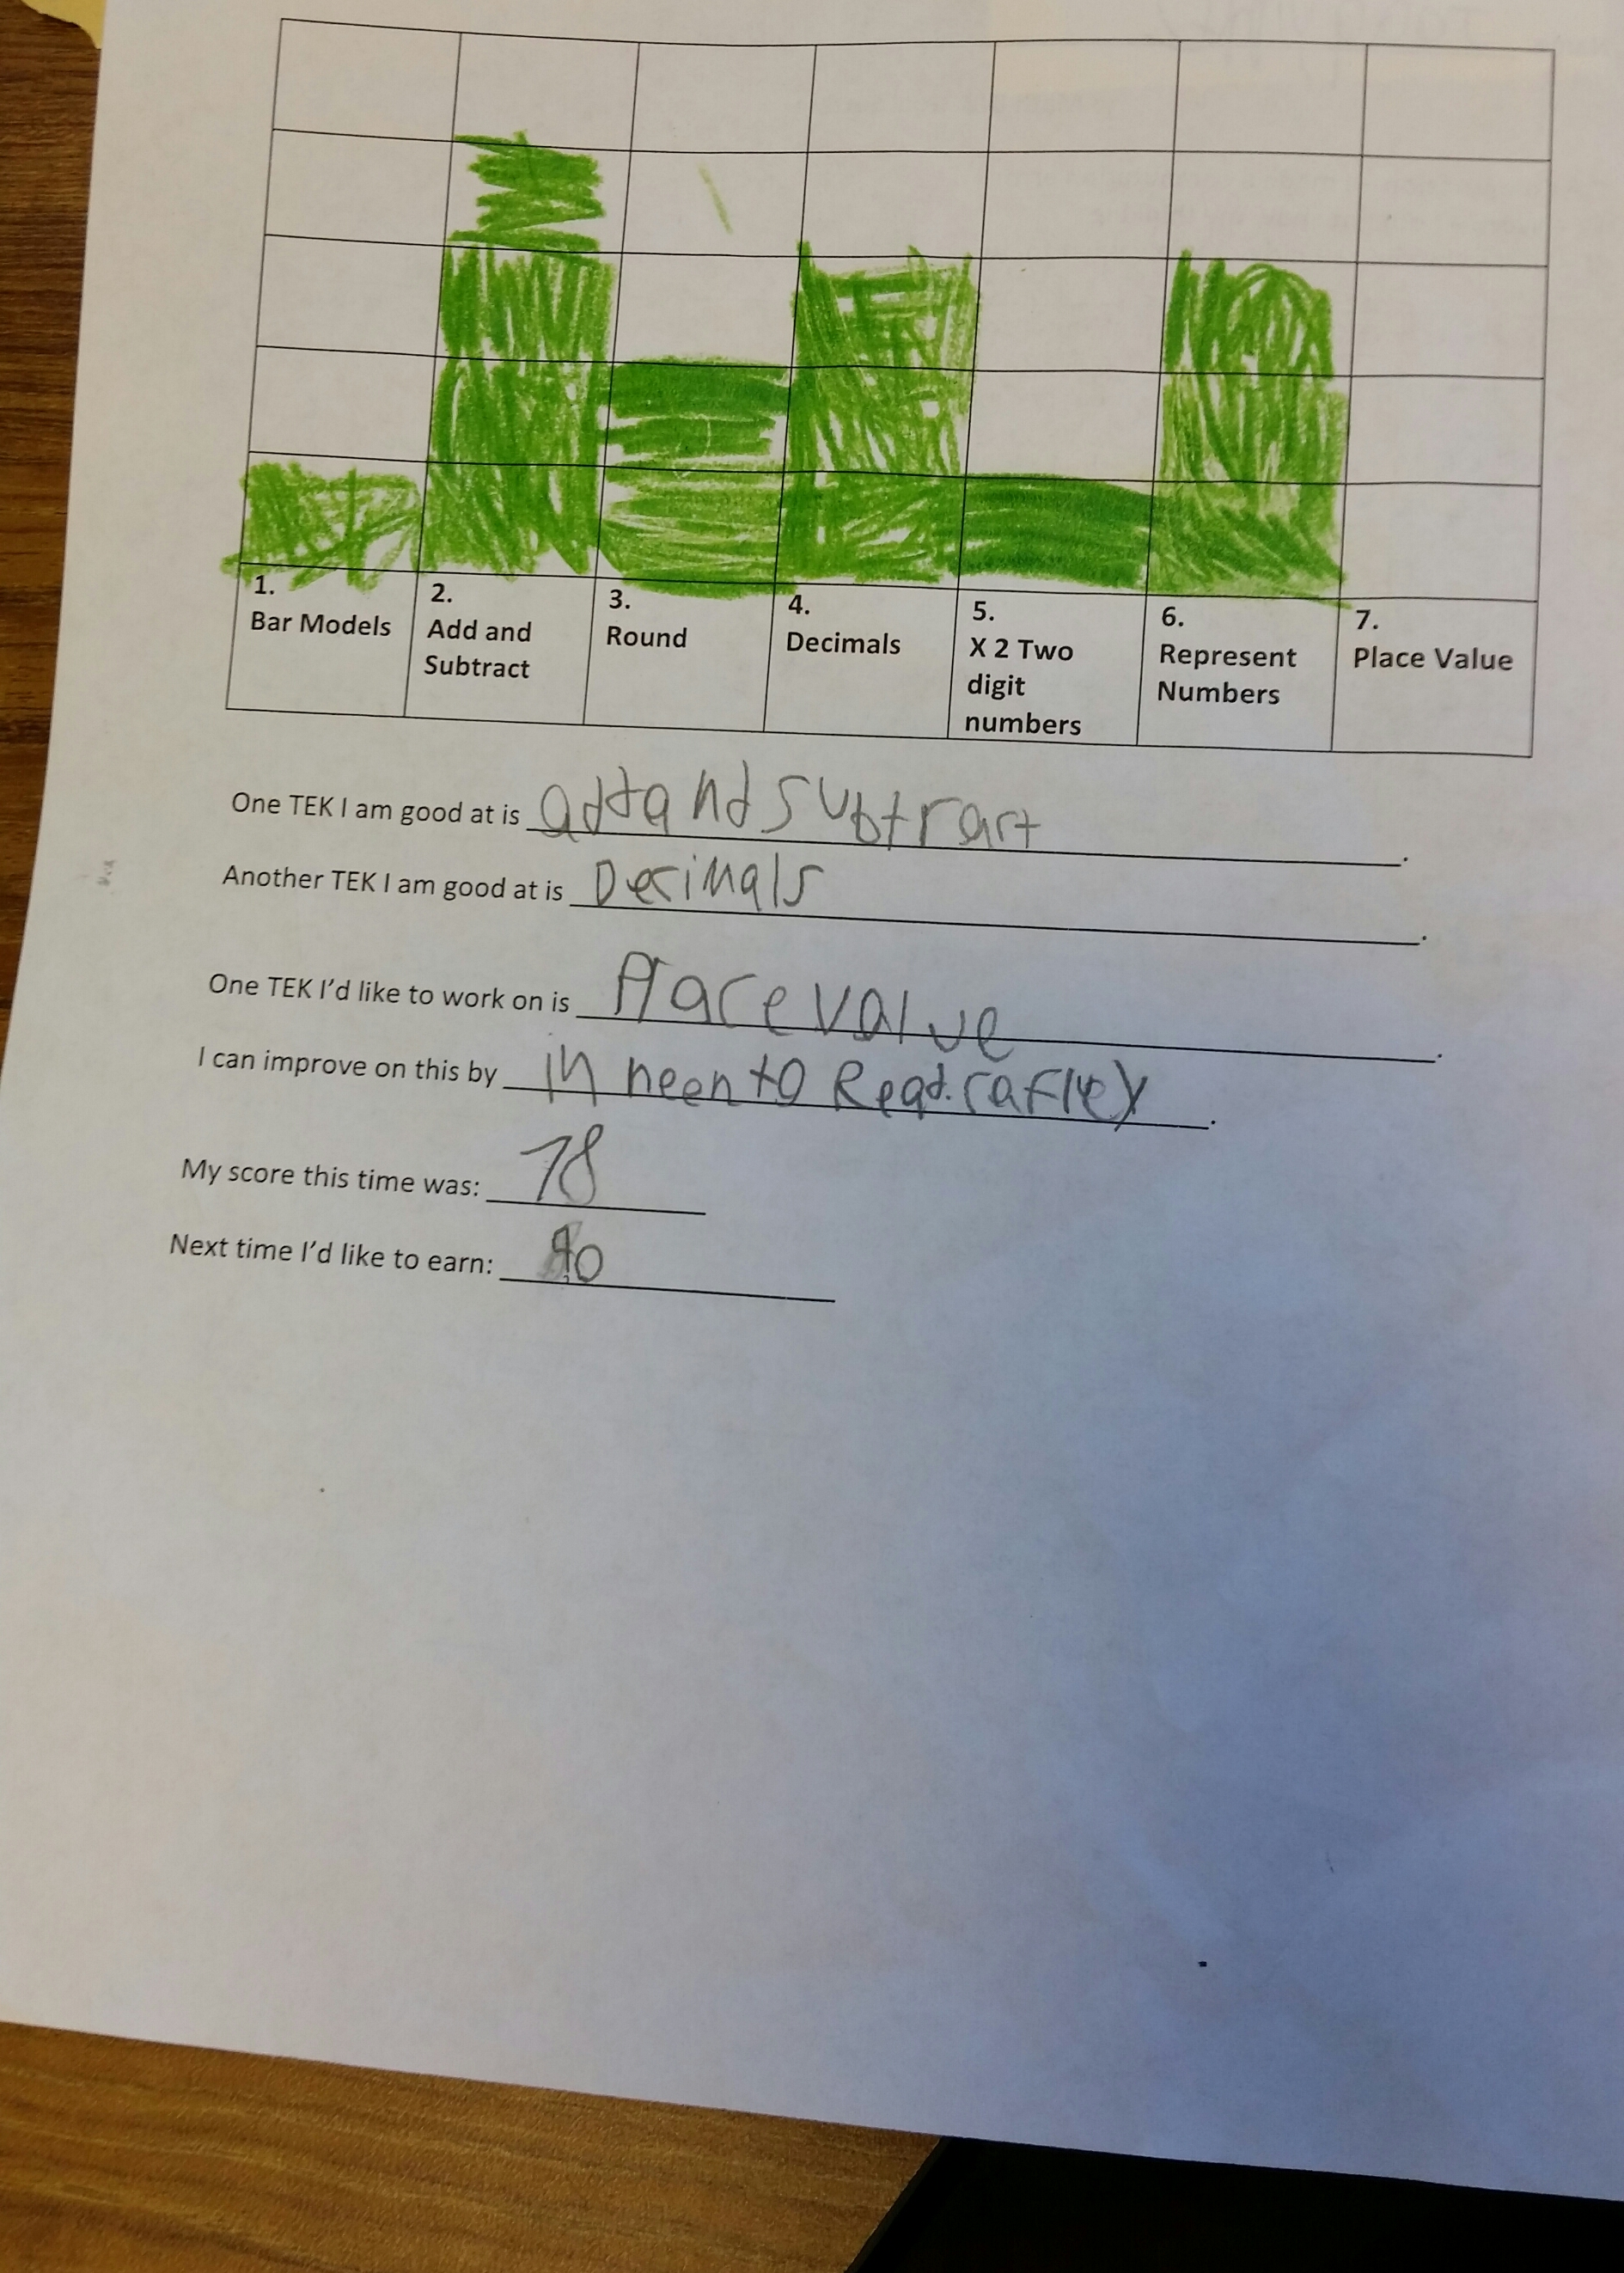 Graphing on the back of Student Data Sheet.